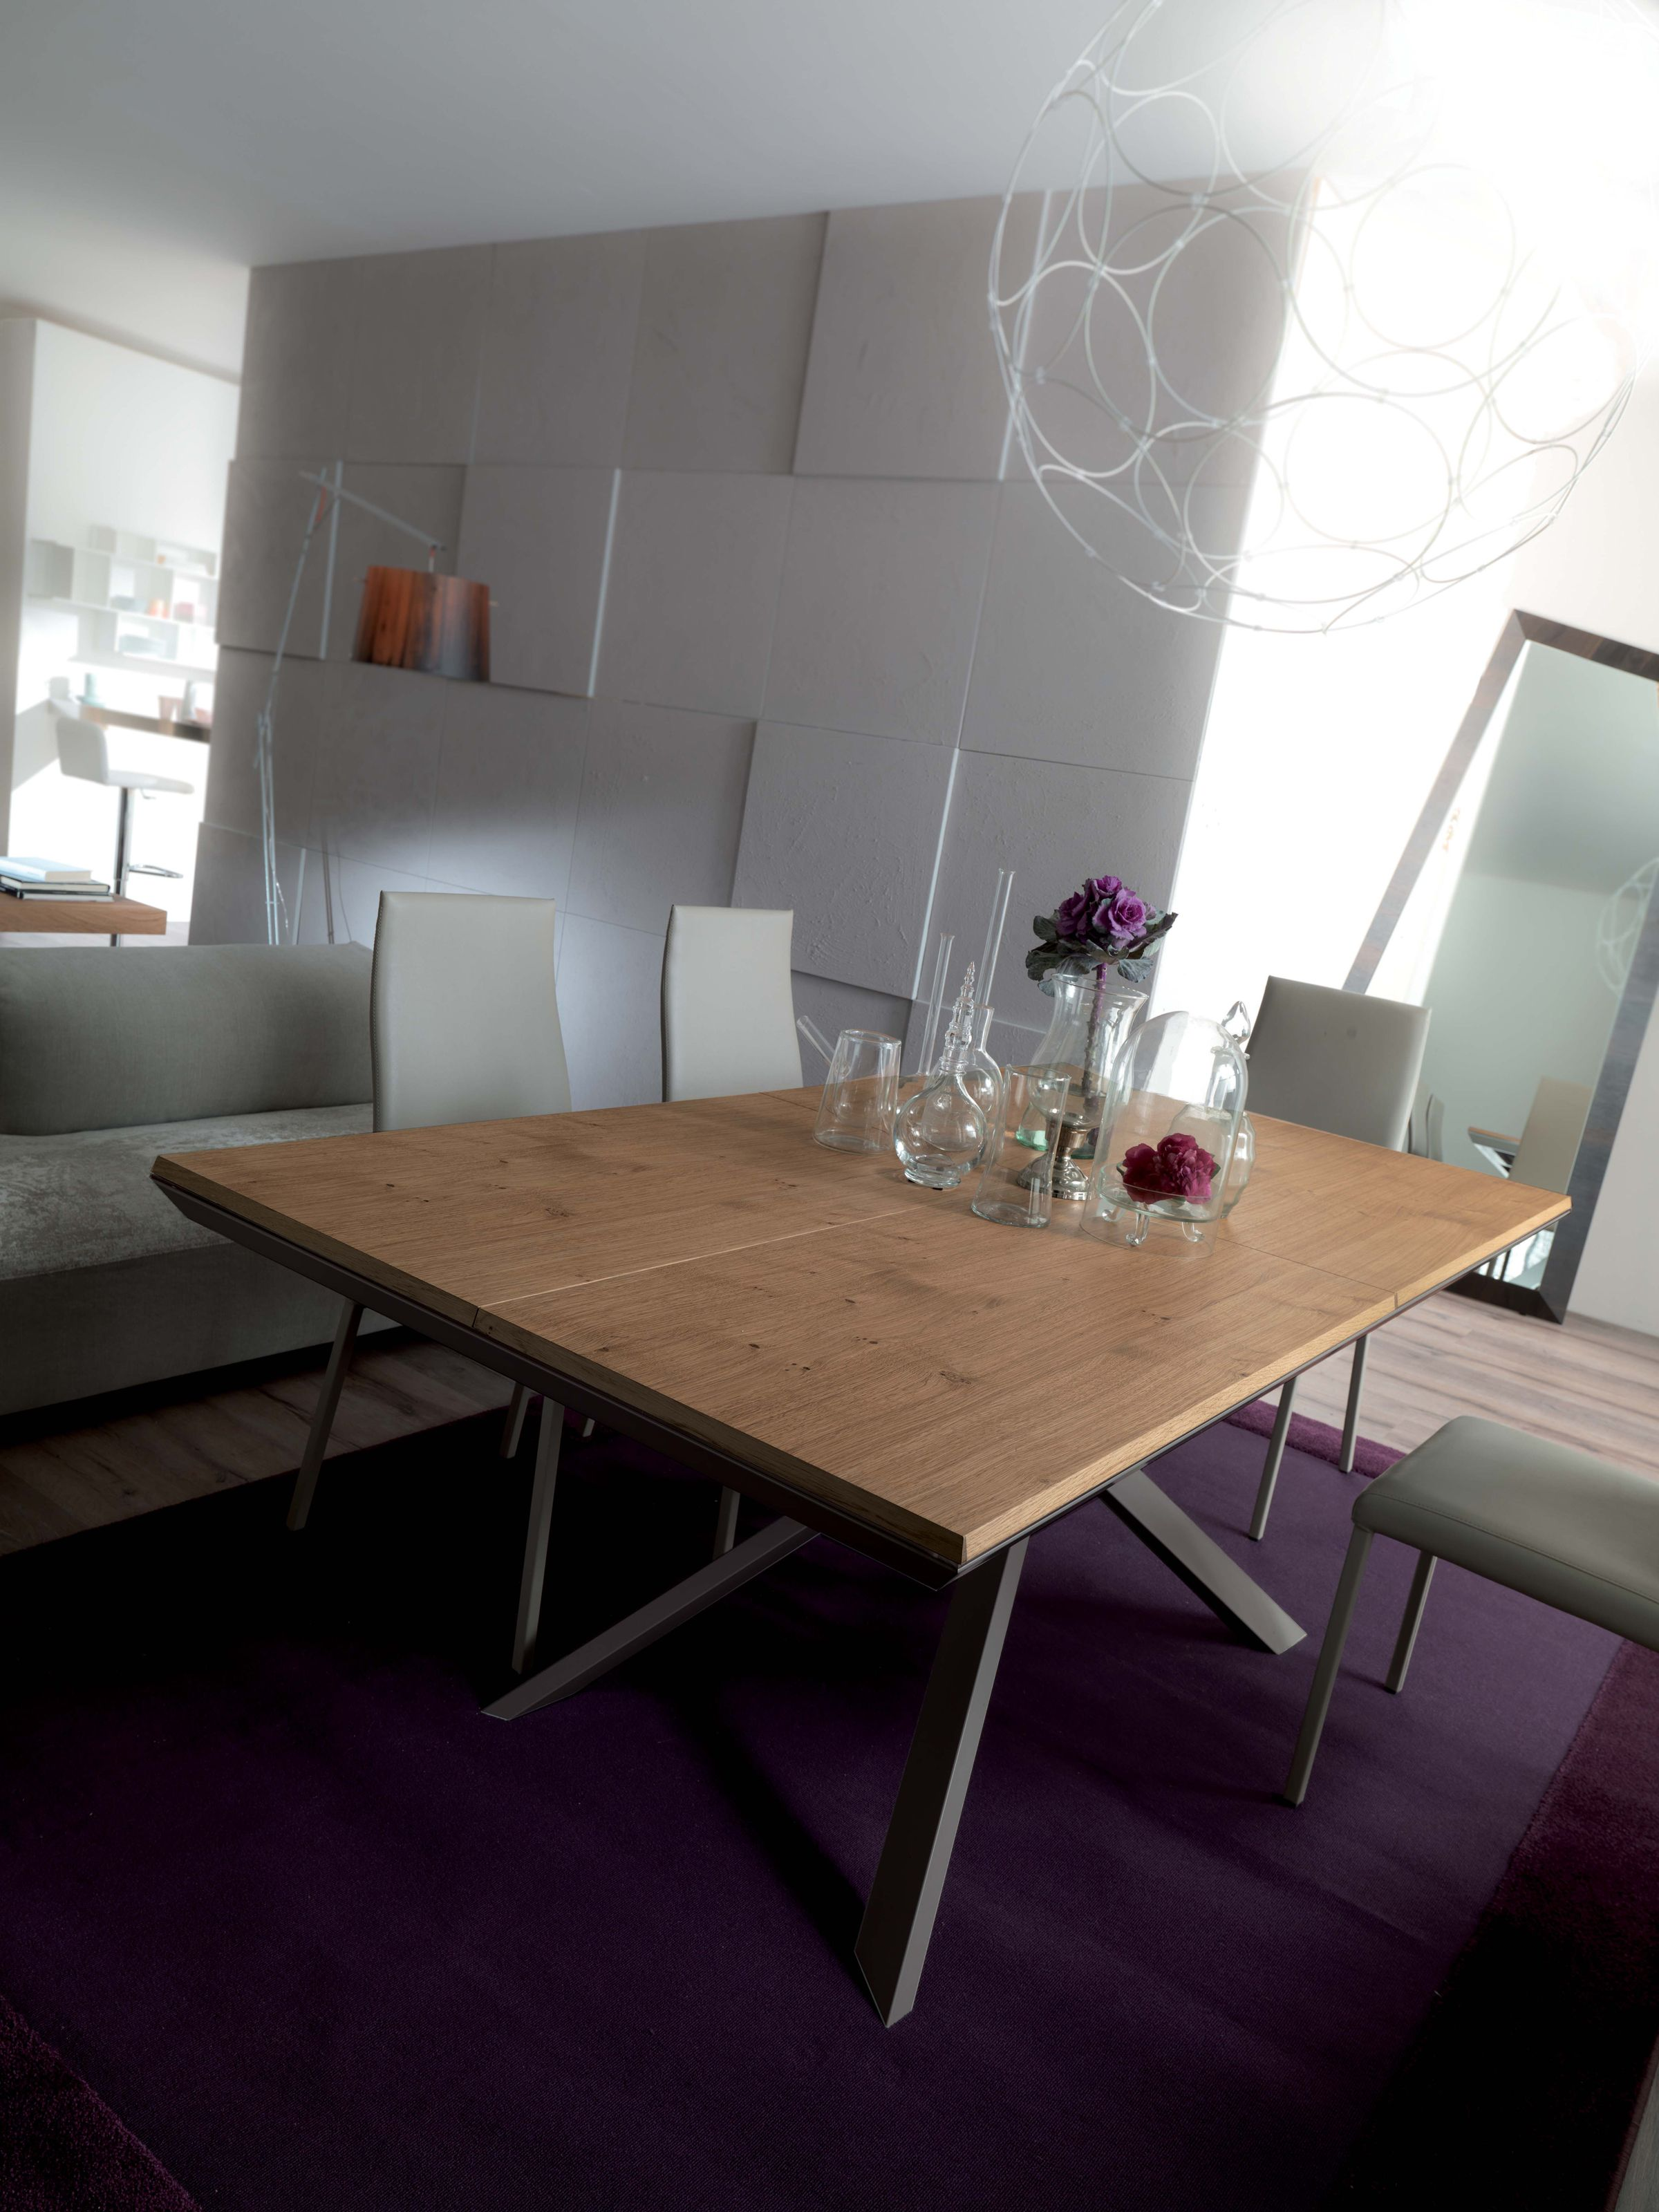 Amazing Furniture now available through Eurocasa Stylish and